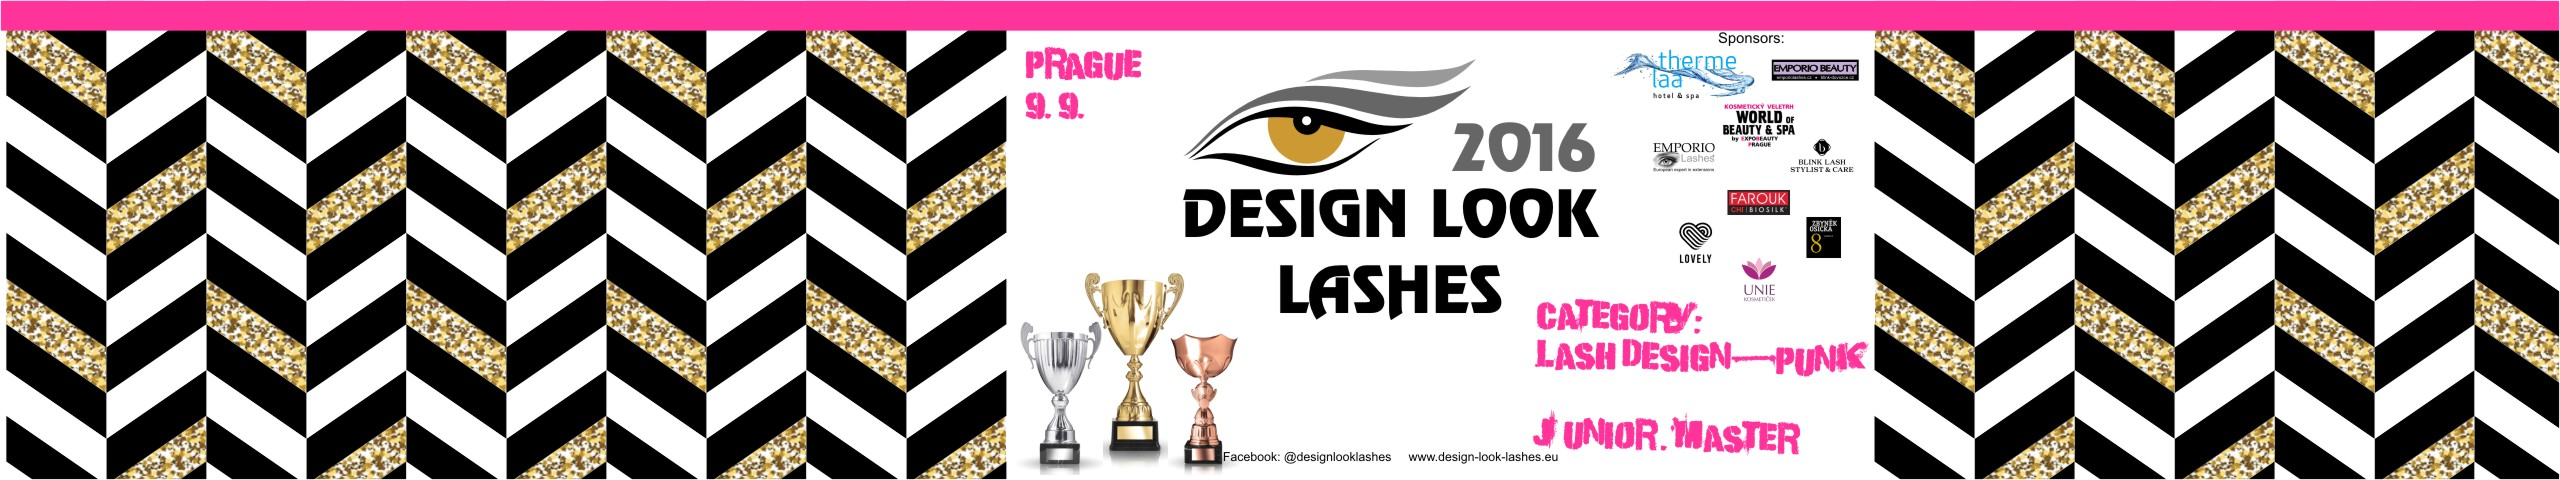 DESIGN LOOK LASHES